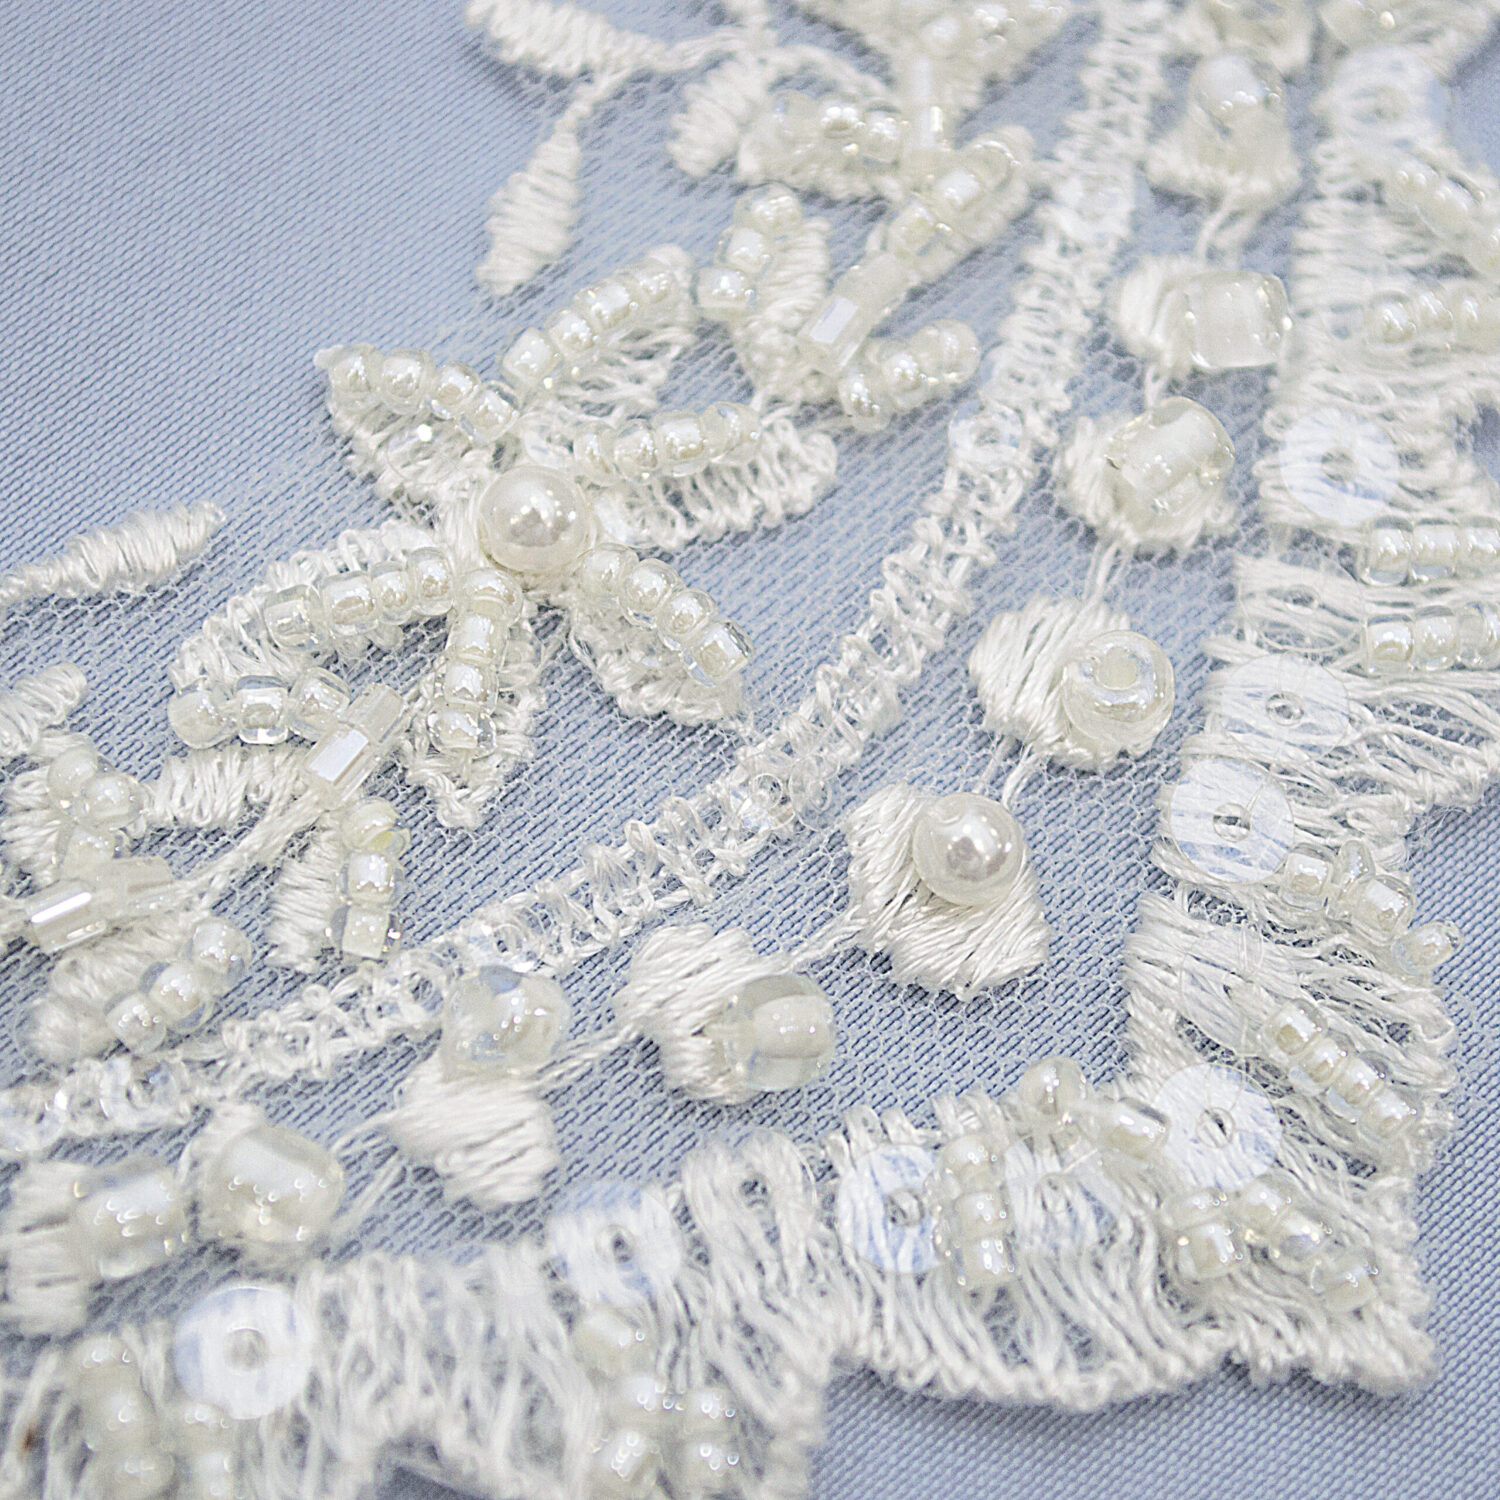 Embroidered lace trim AM13580-1F2B-N44